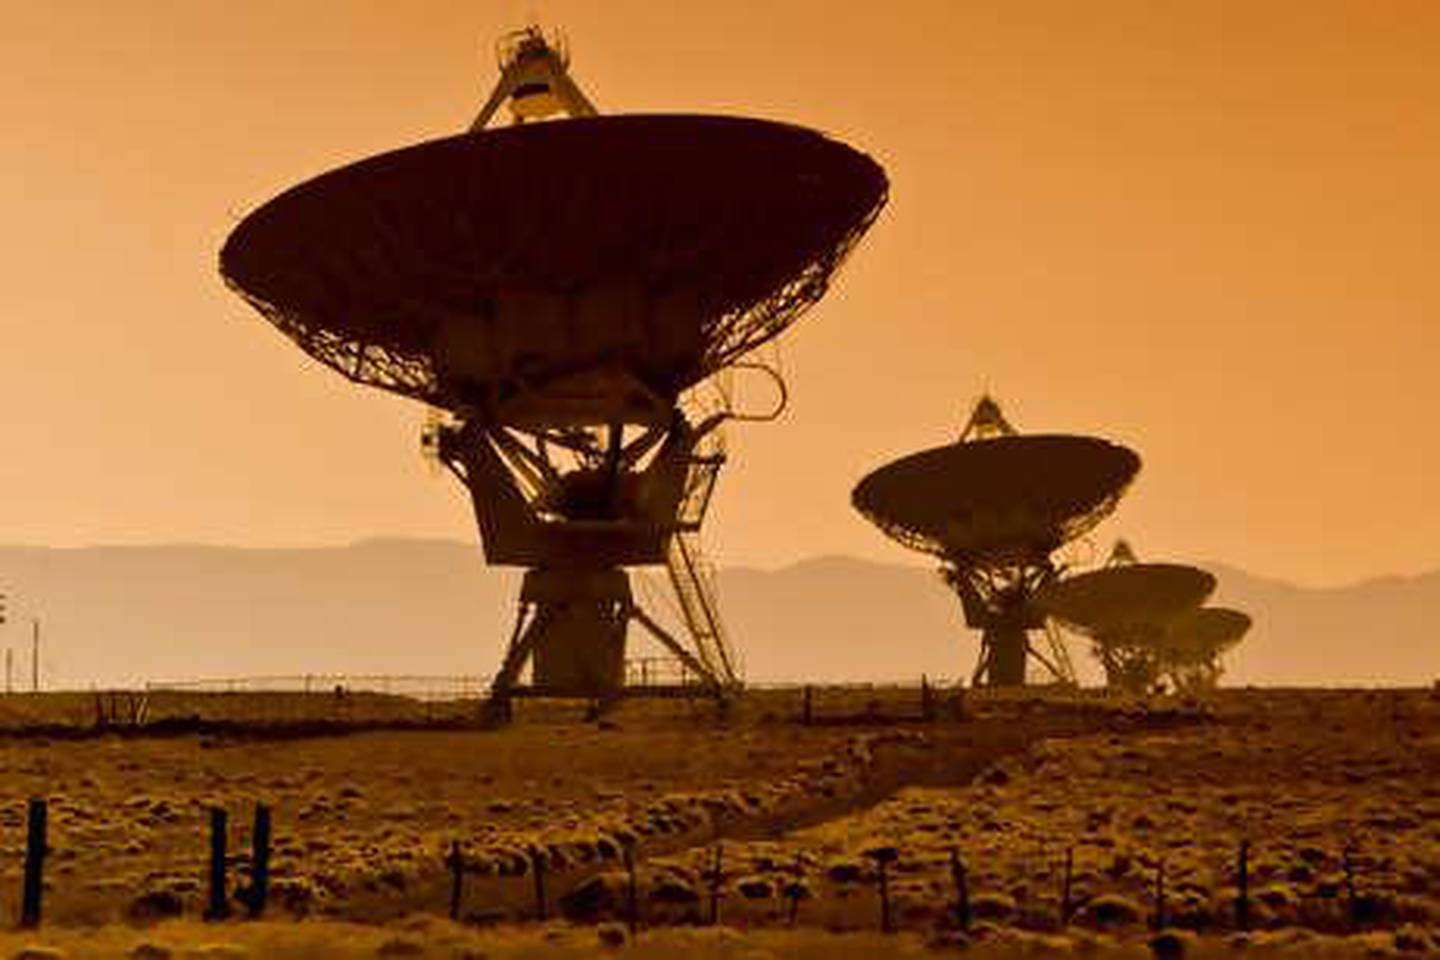 USA, New Mexico, VLA Very Large Array of the National Radio Astronomy Observatory